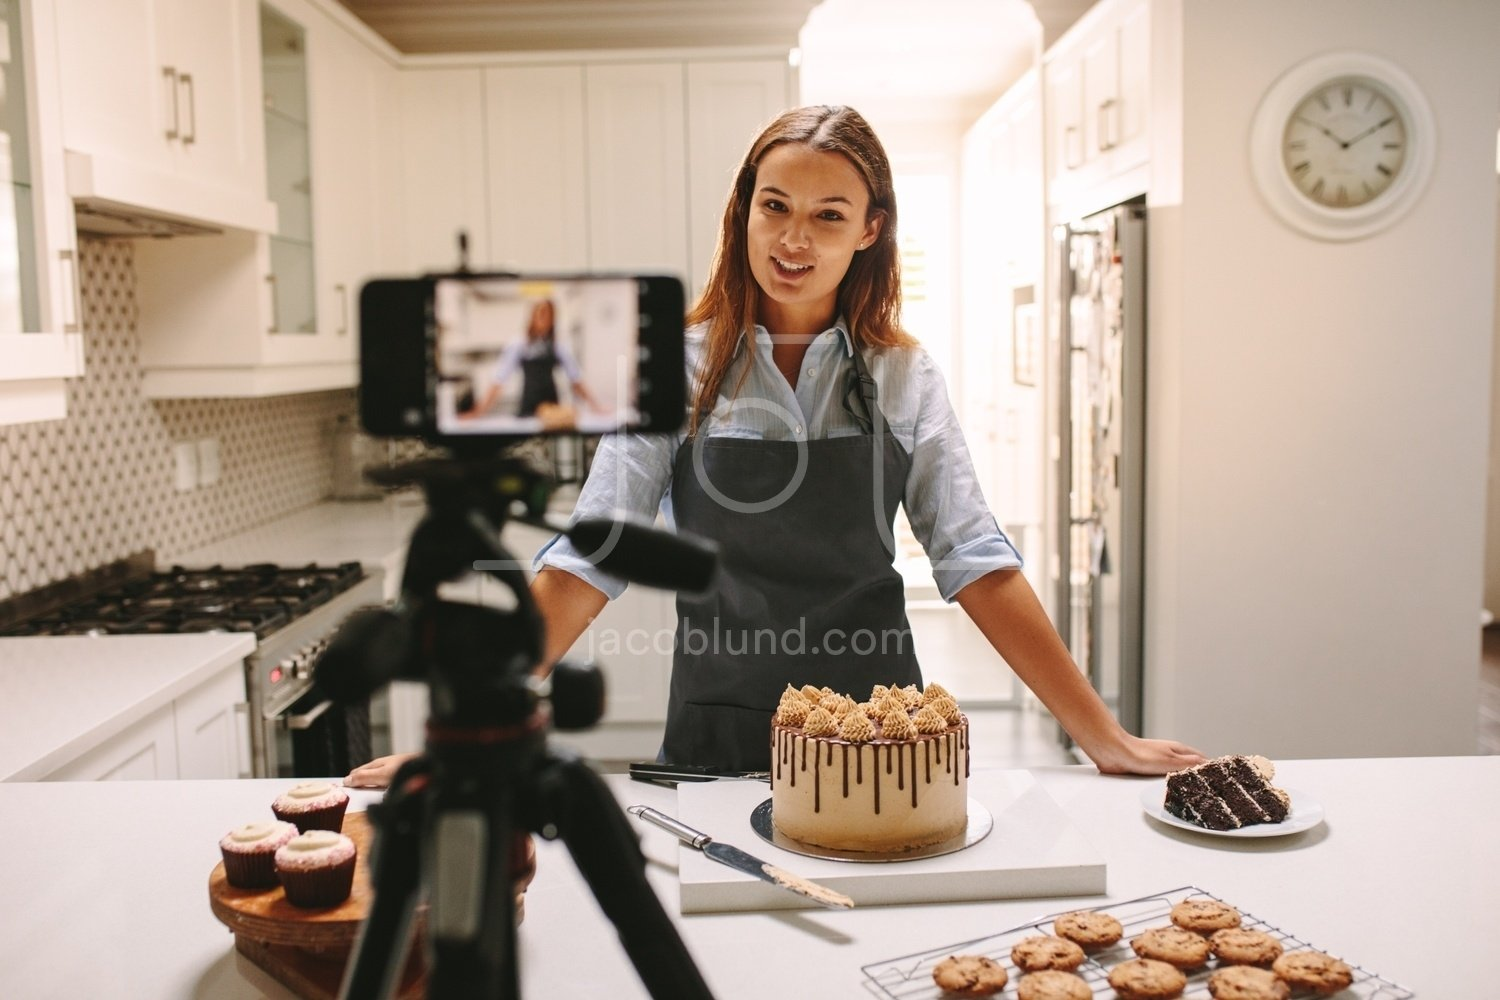 Woman Vlogger Recording Video For Food Channel Jacob Lund Photography Store Premium Stock Photo